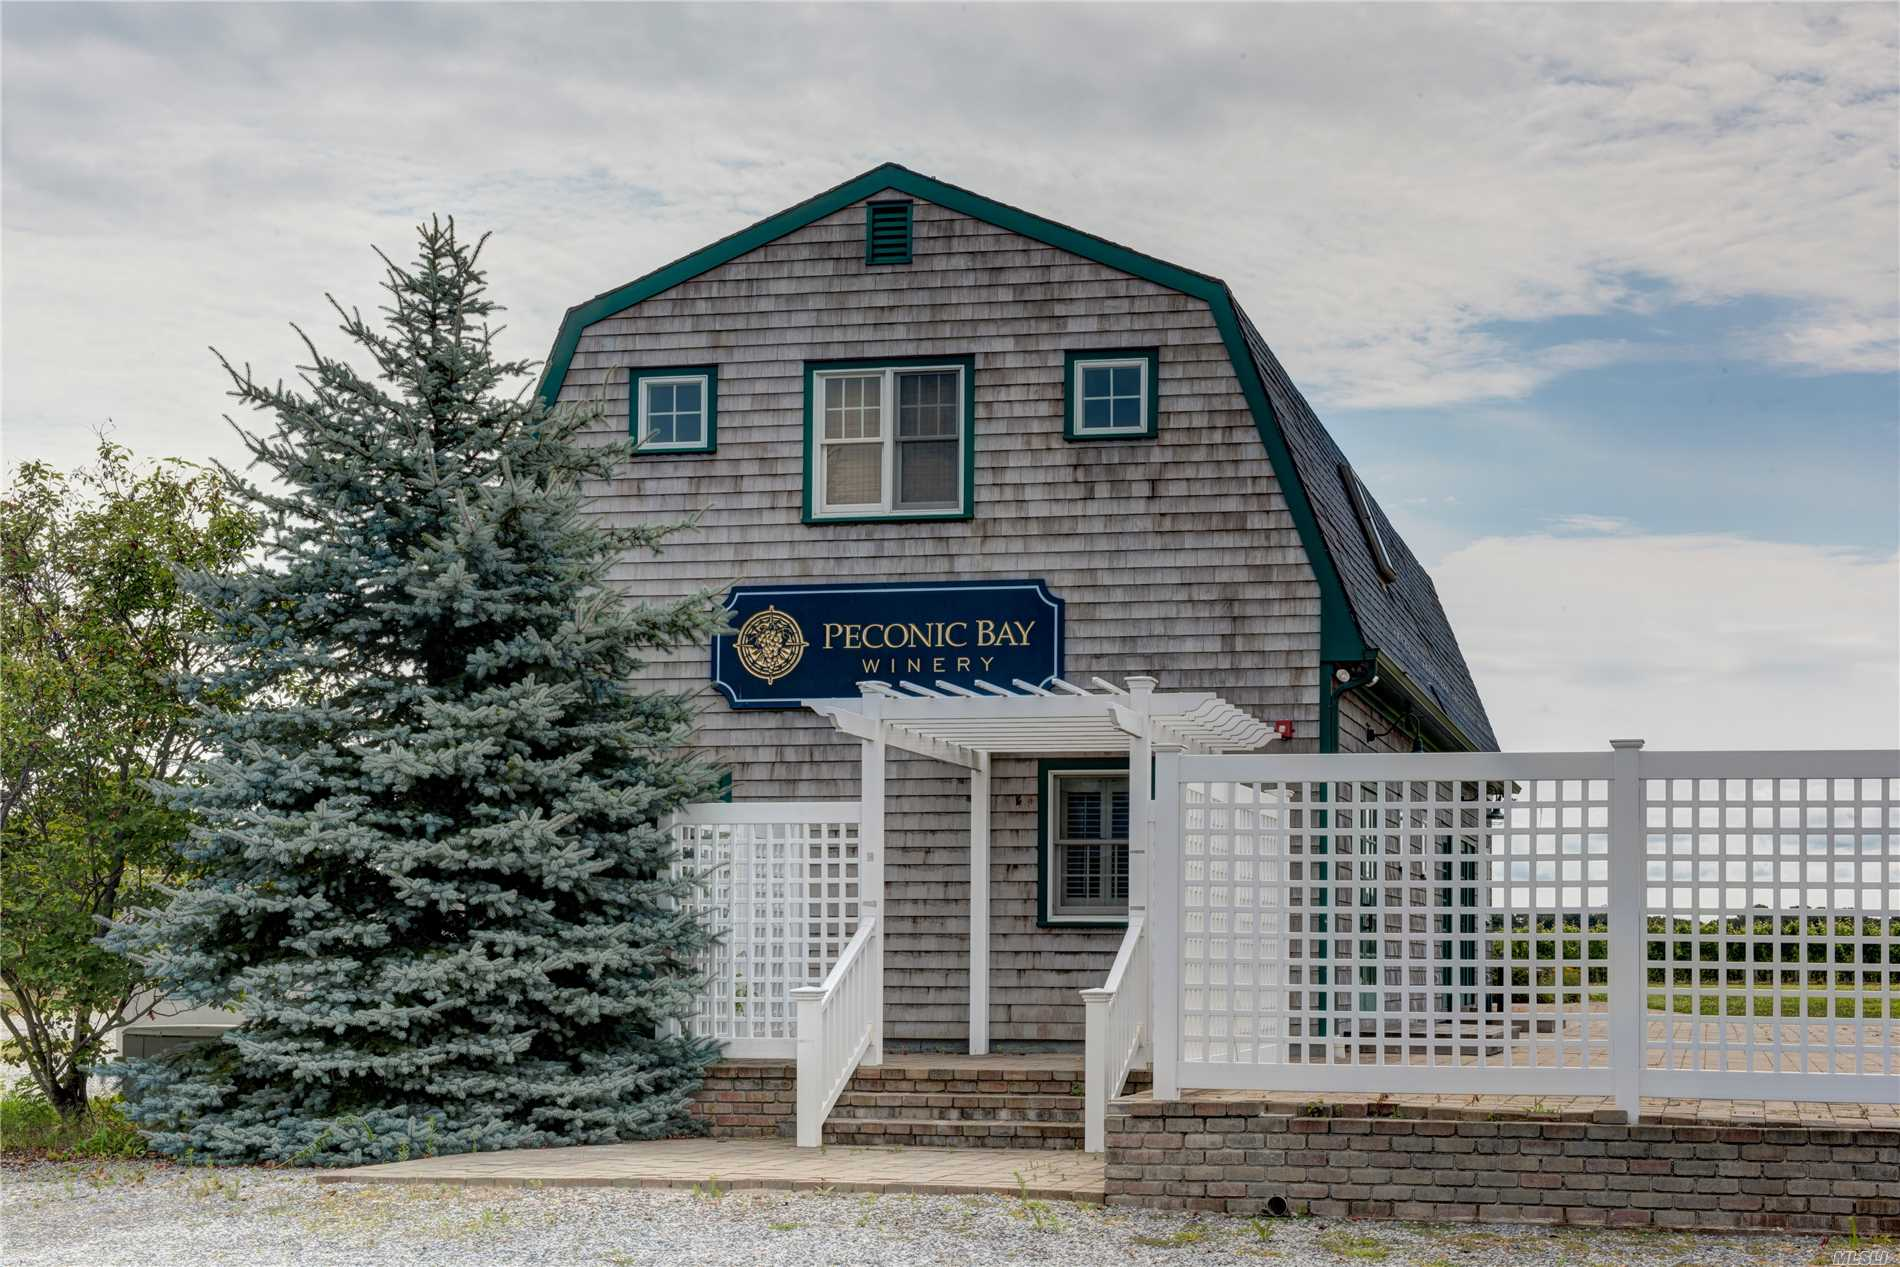 53 Acre winery. 16 of the 53 acres zoned for commercial development. Potential exists for a 20 unit motel, restaurant/catering complex and roadside retail farmstand to complement the vineyard and tasting room. 4 bedroom house included. Endless possibilities - all subject to town site plan and Suffolk County Health Department approval.